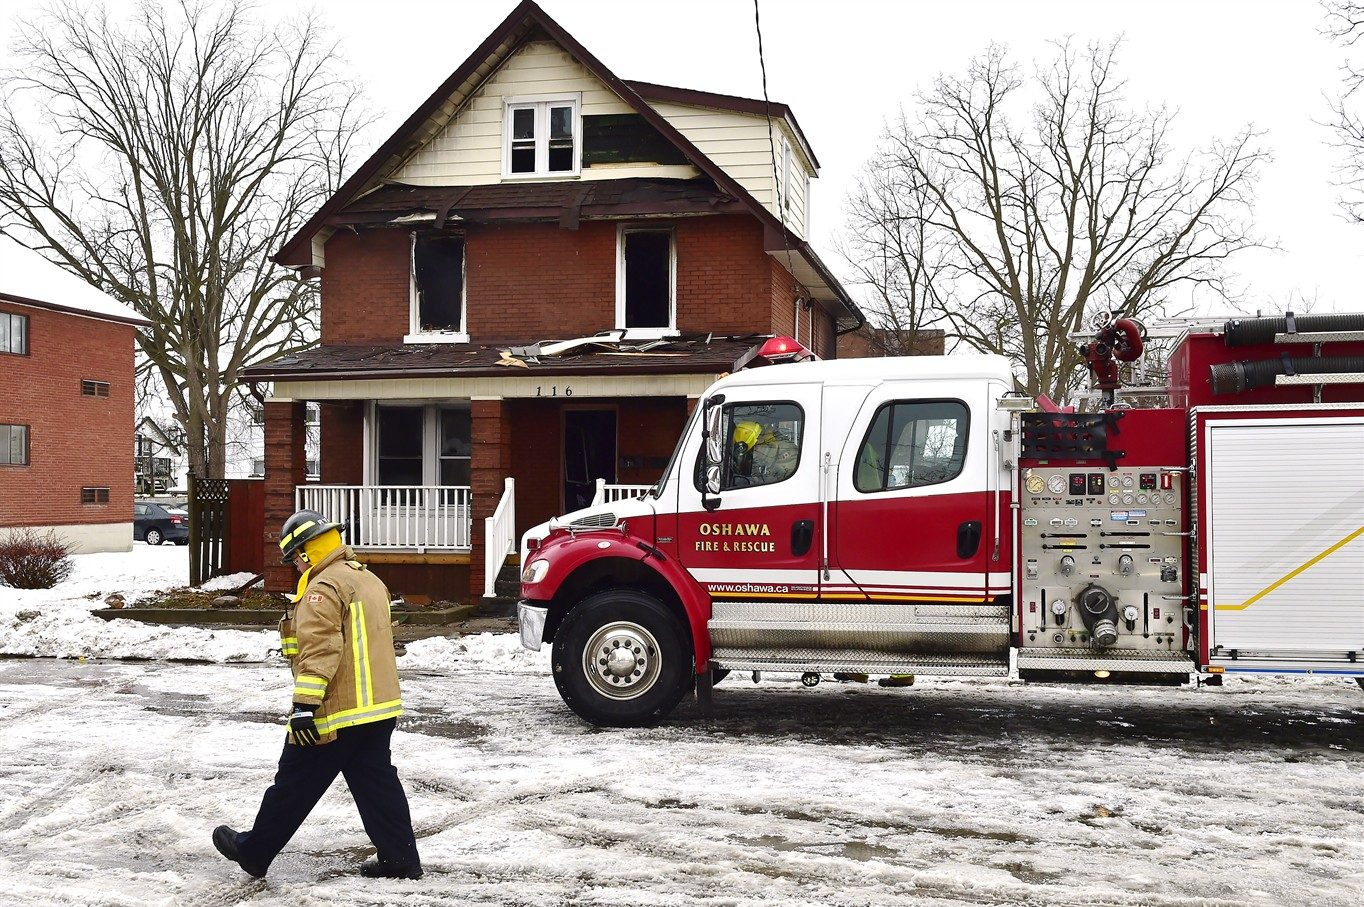 Social media campaign launched after tragic fire deaths in Oshawa